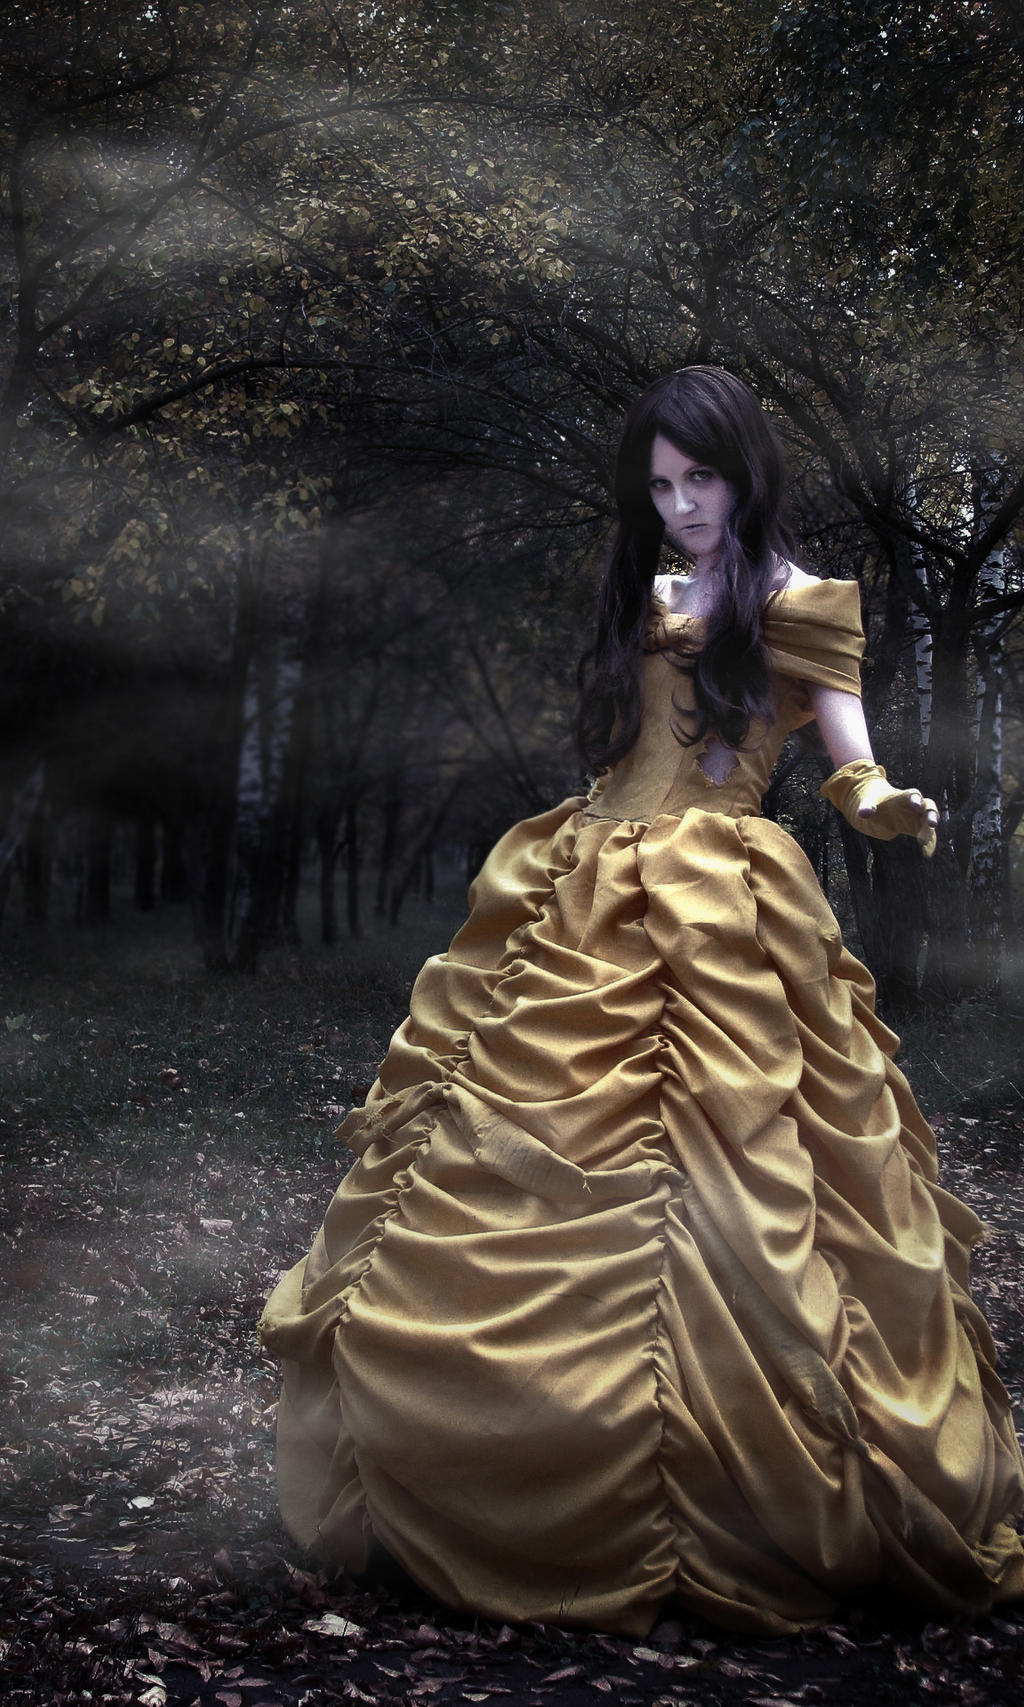 Twisted Princess: Belle by Rosa-Mary - 448.6KB